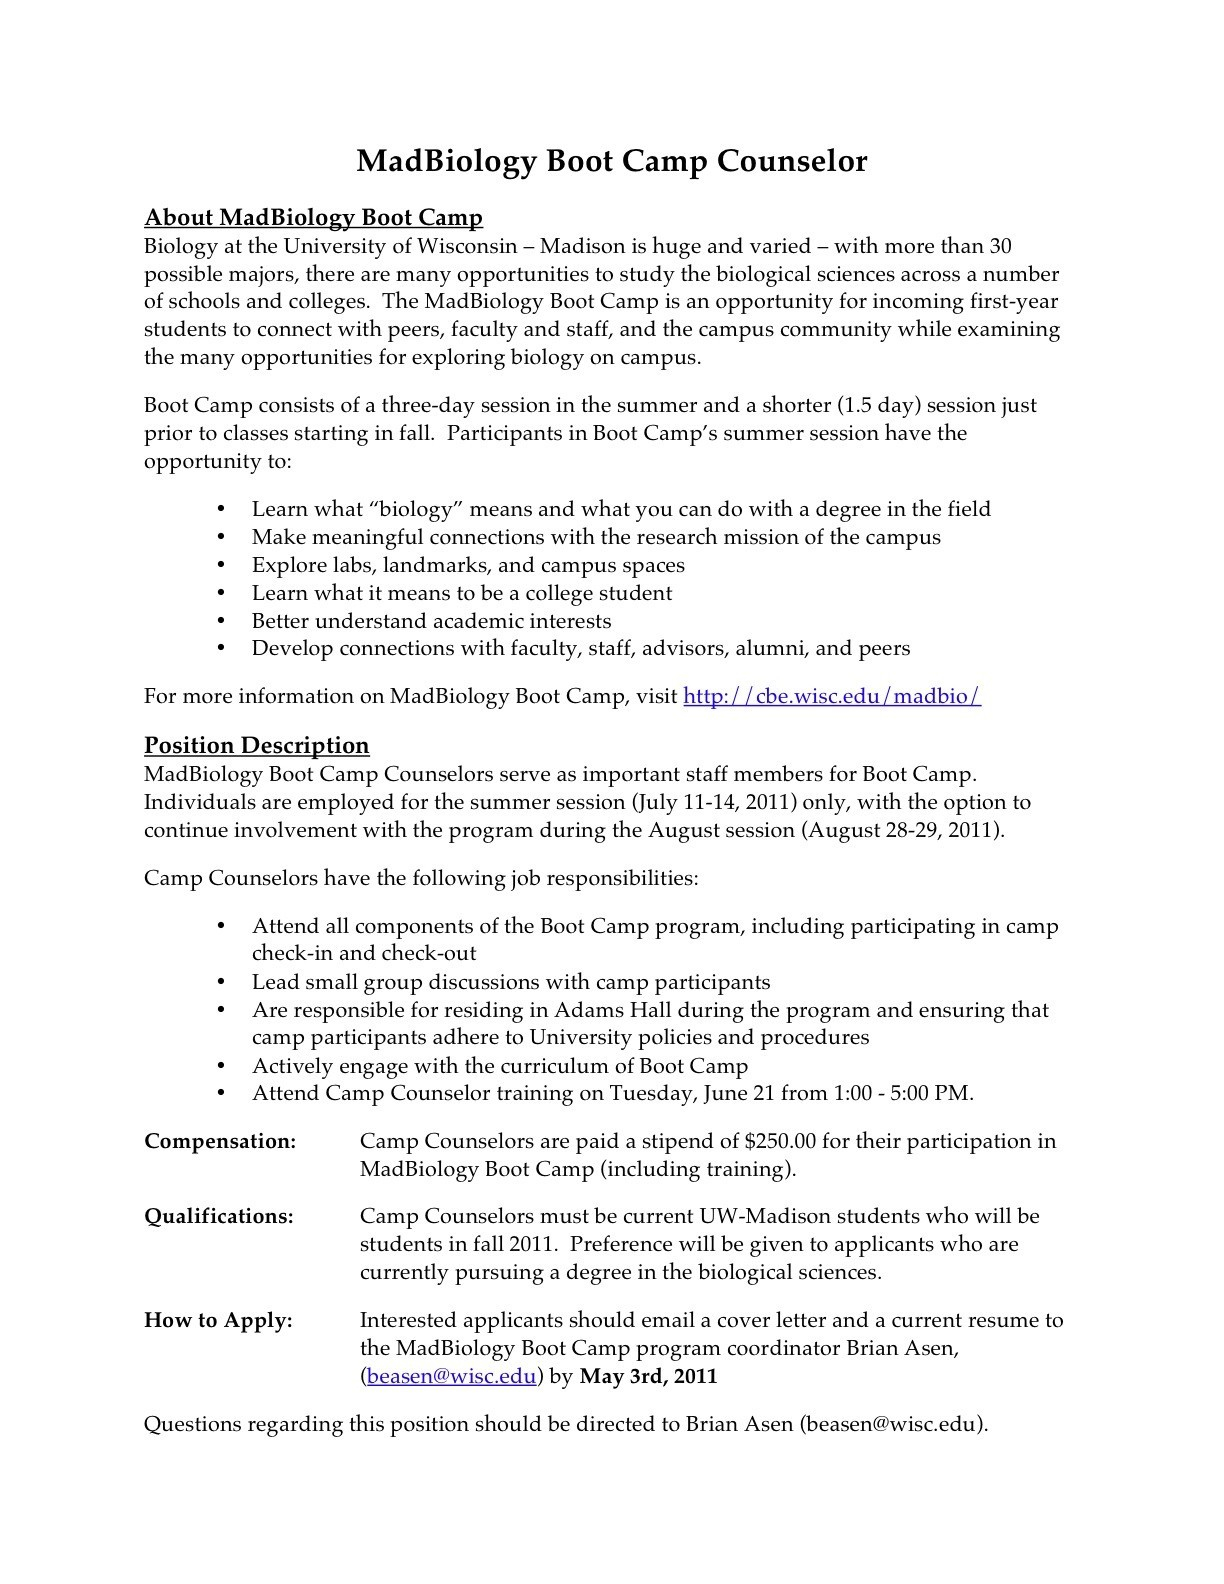 After School Counselor Resume - Camp Counselor Resume Inspirational Resume Examples for Youth